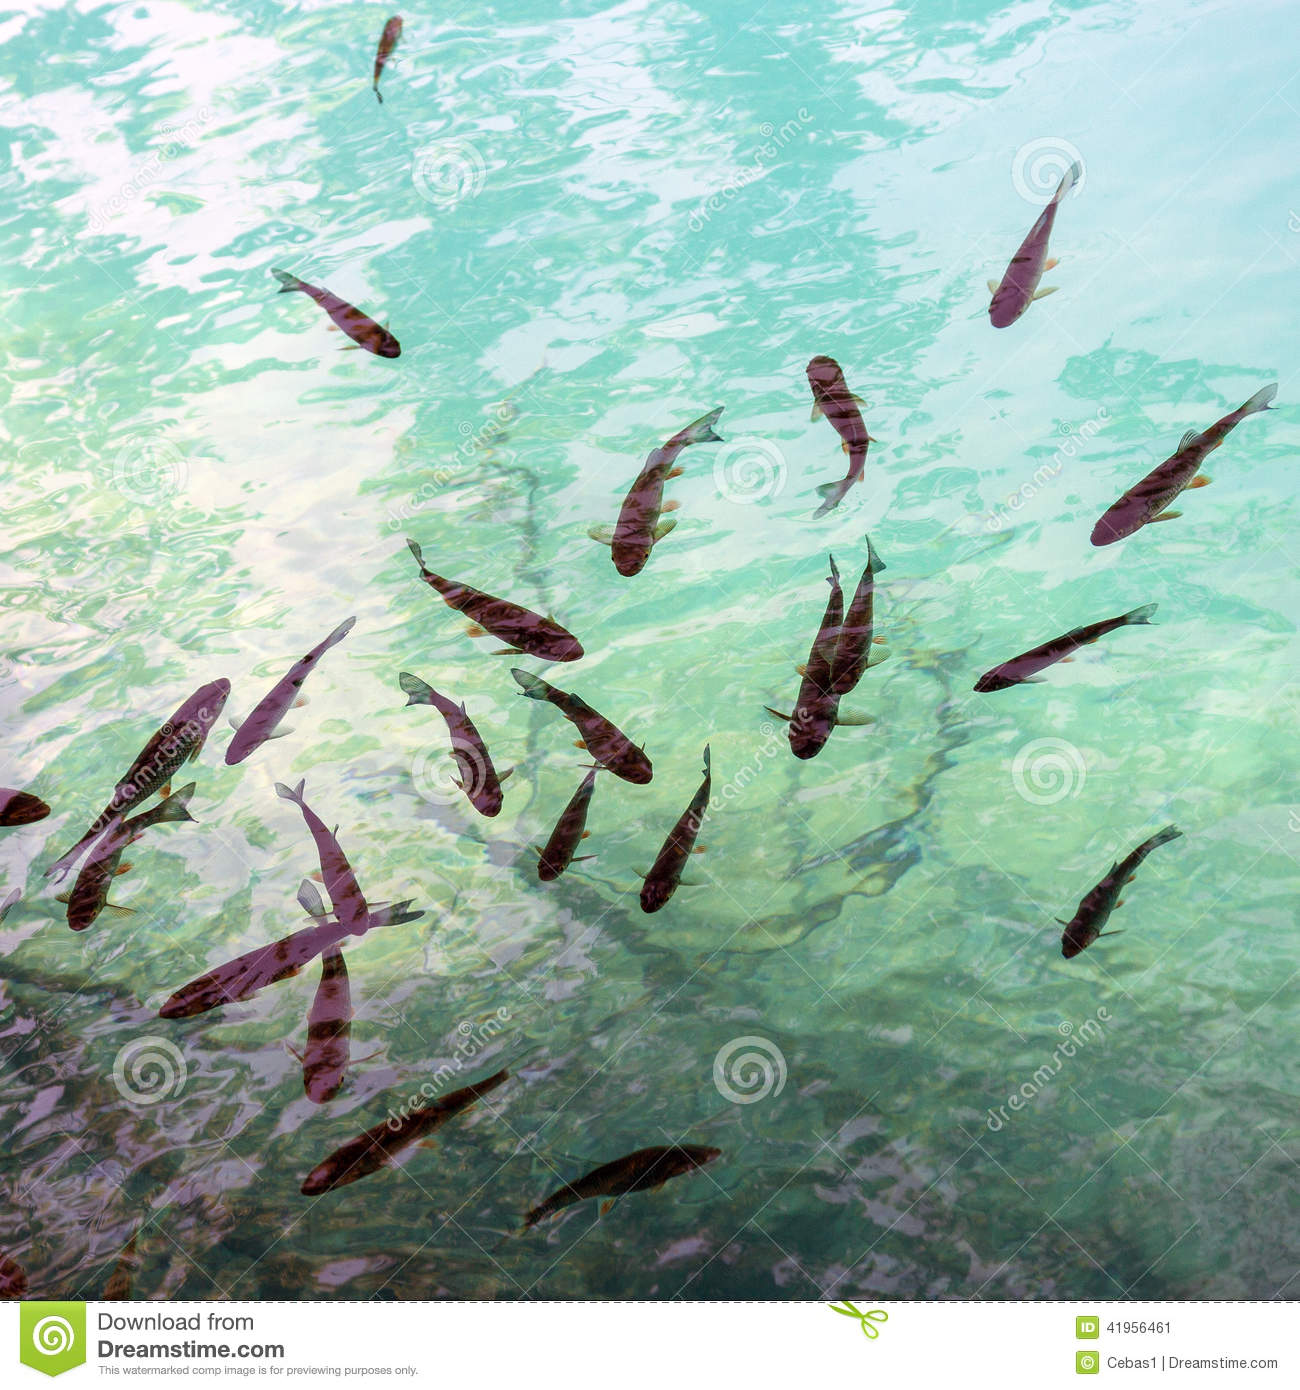 School of fish in the aquarium dangerous piranha behind for Dream of fish swimming